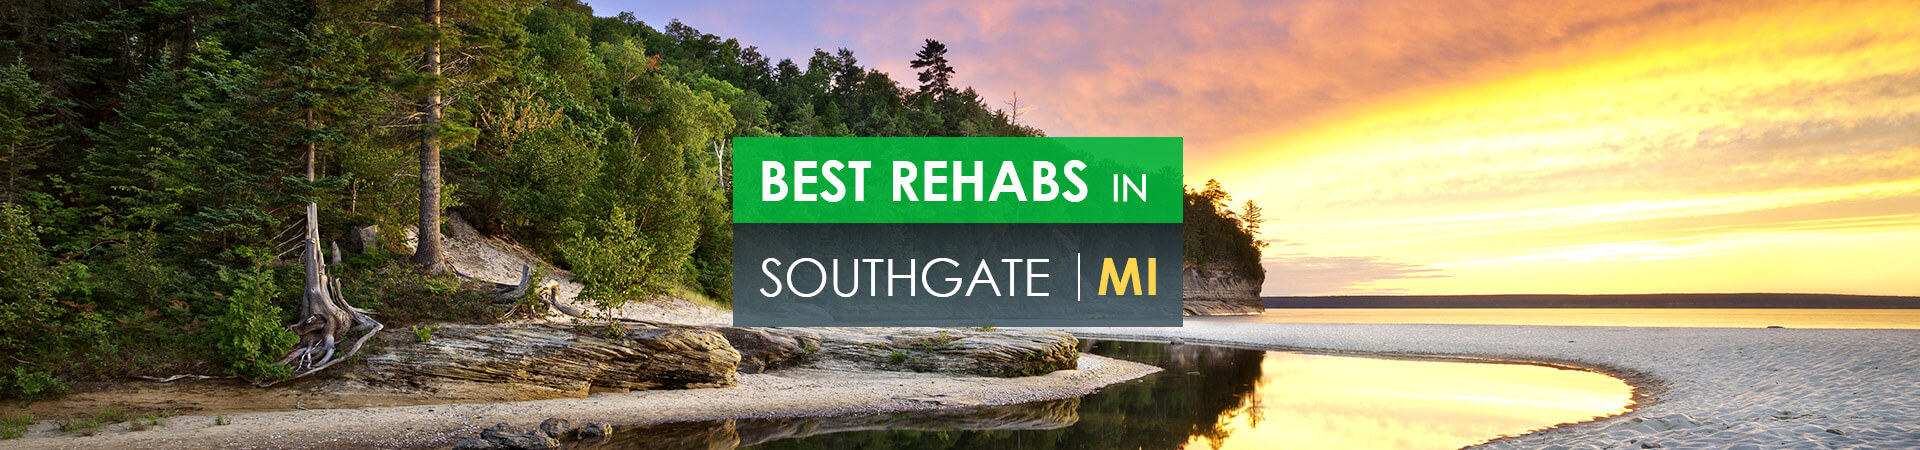 Best rehabs in Southgate, MI